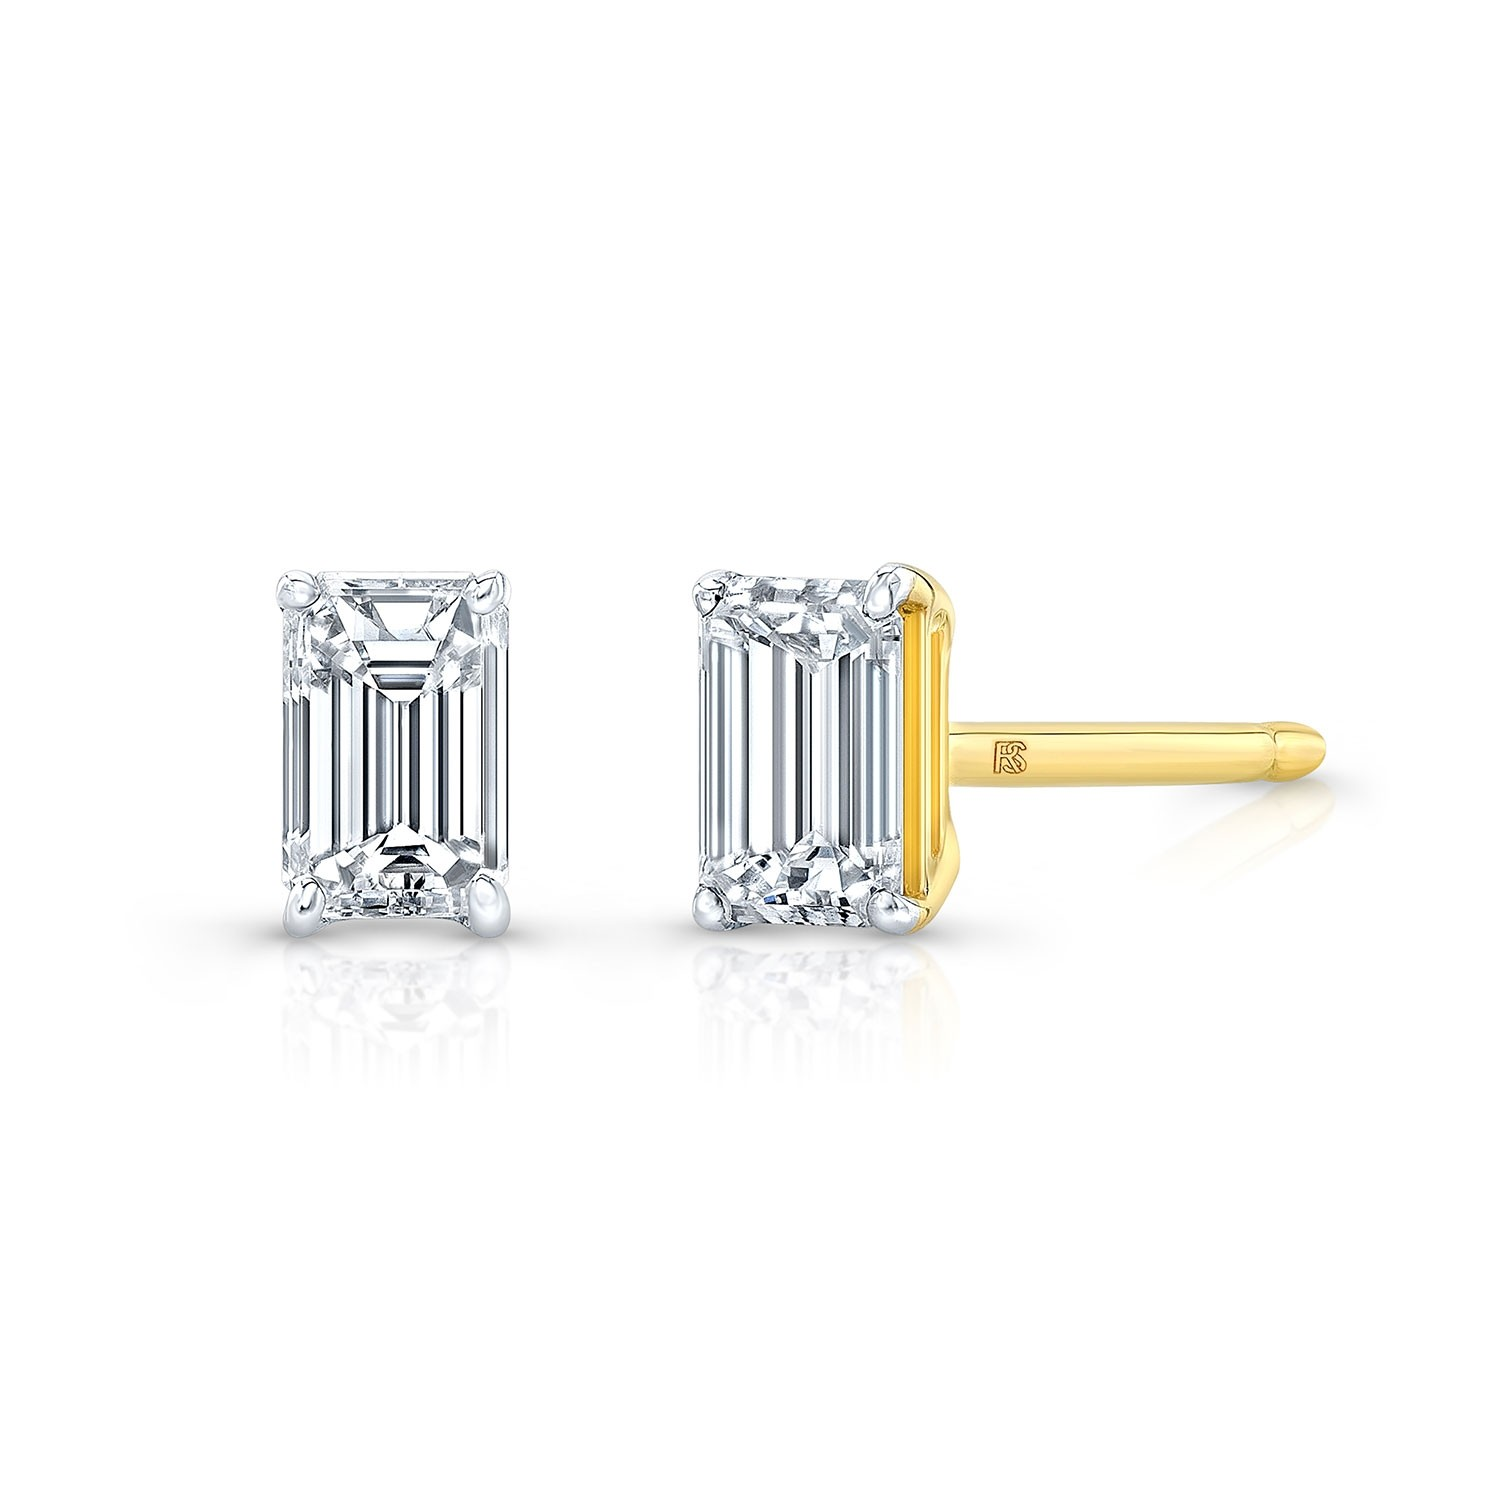 14k Yellow Gold Floating Emerald Cut Diamond Stud Earrings